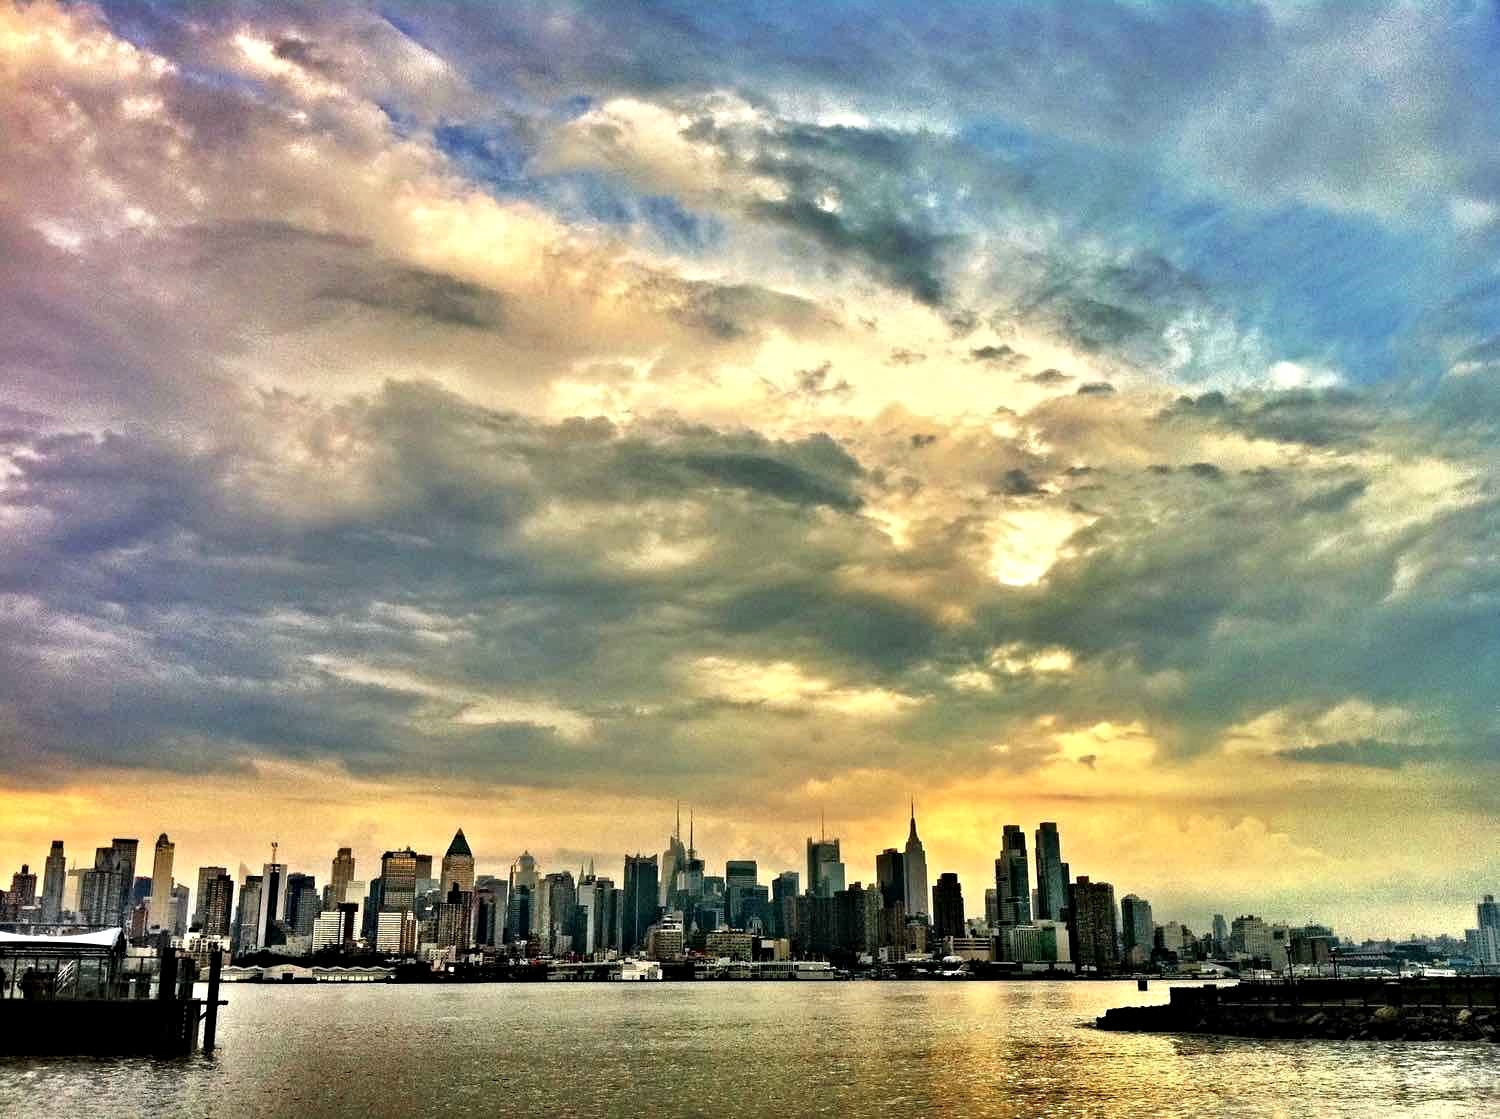 The New York City skyline after a stormy afternoon from Weehawken, NJ